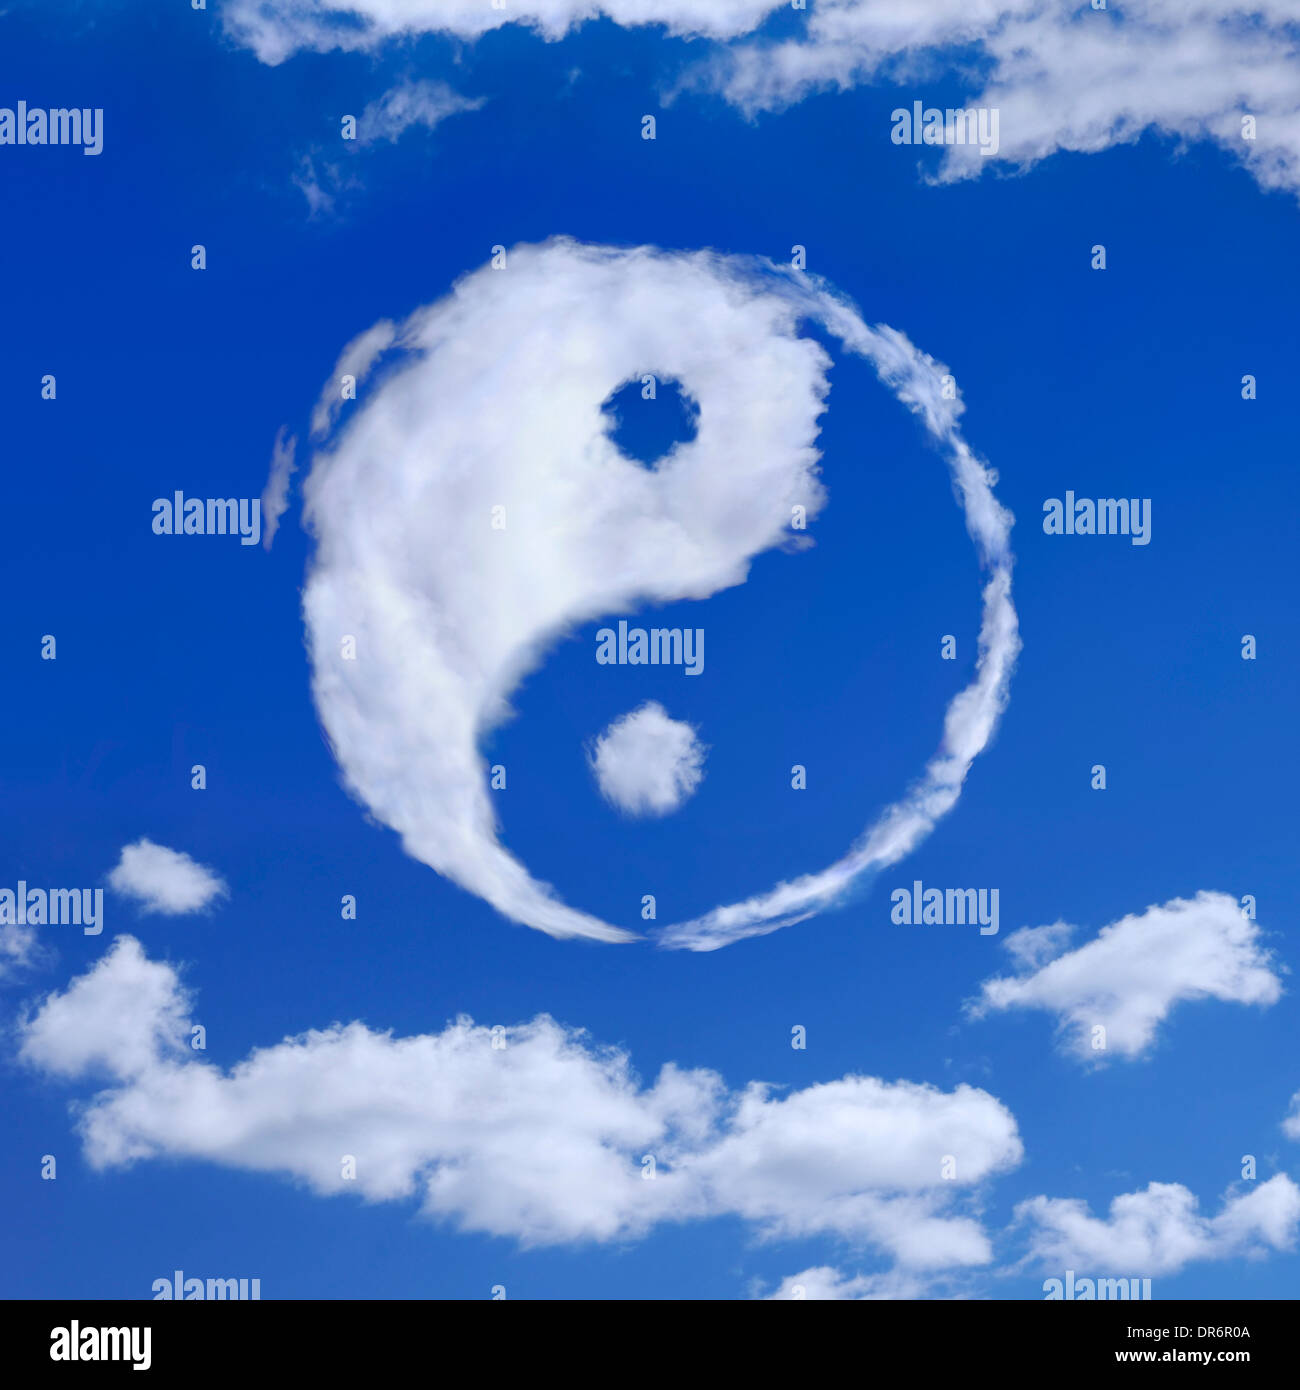 Worksheet What Clouds Made Of yin yang spiritual symbol made from white clouds in blue sky stock photo meditation spirituality concept